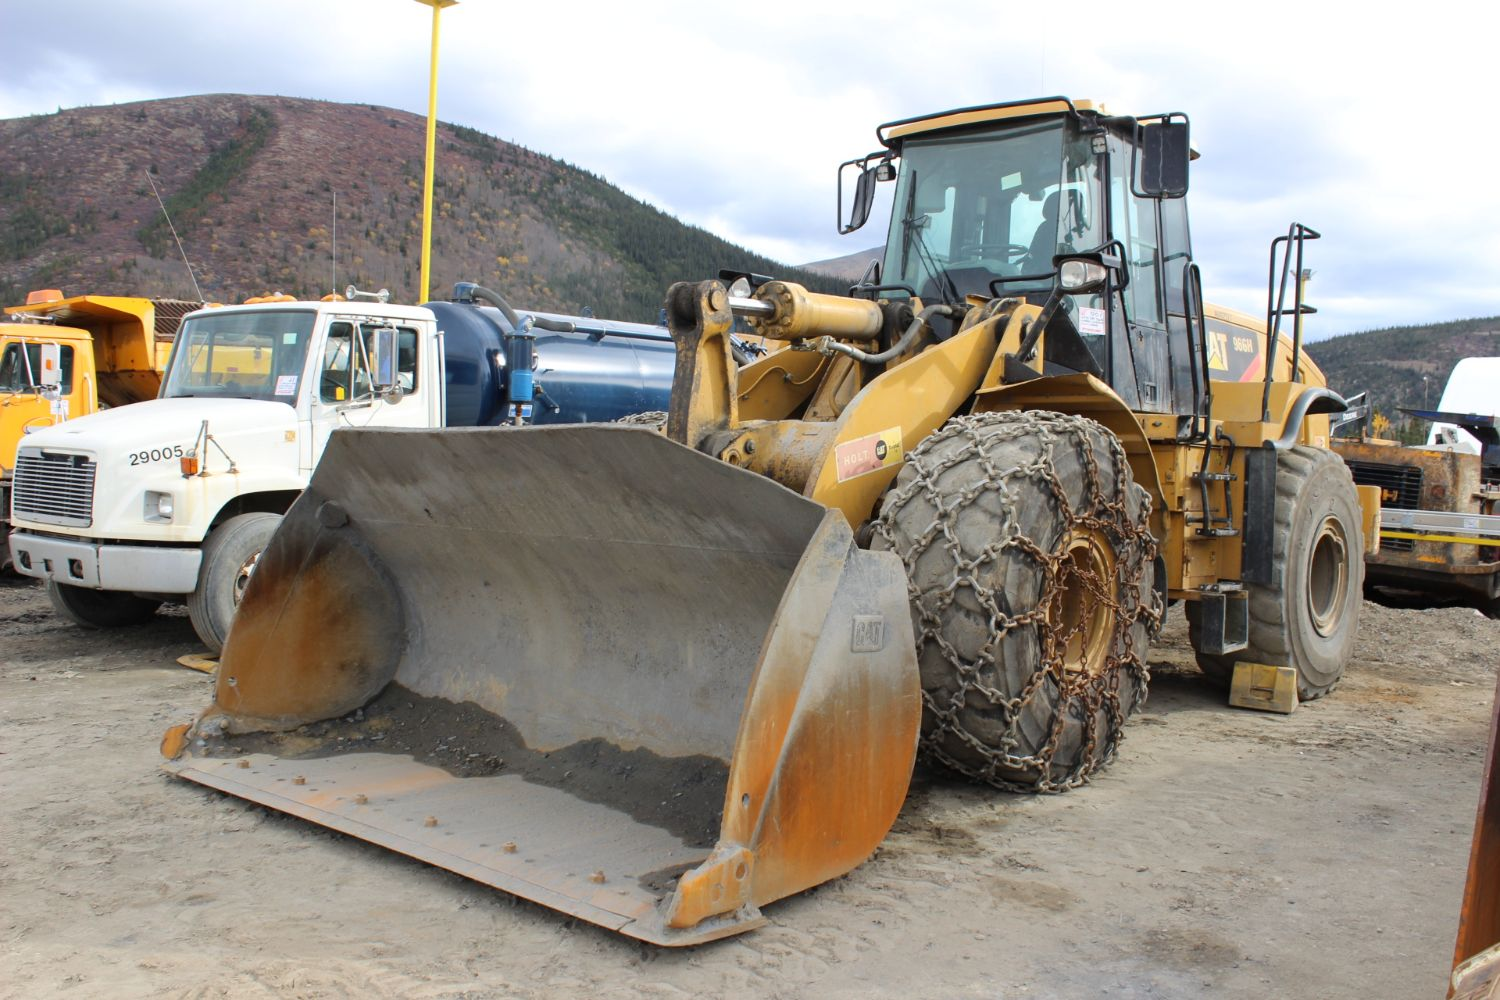 Coeur Silvertip Mine - Surplus mobile equipment & parts for sale, due to expansion